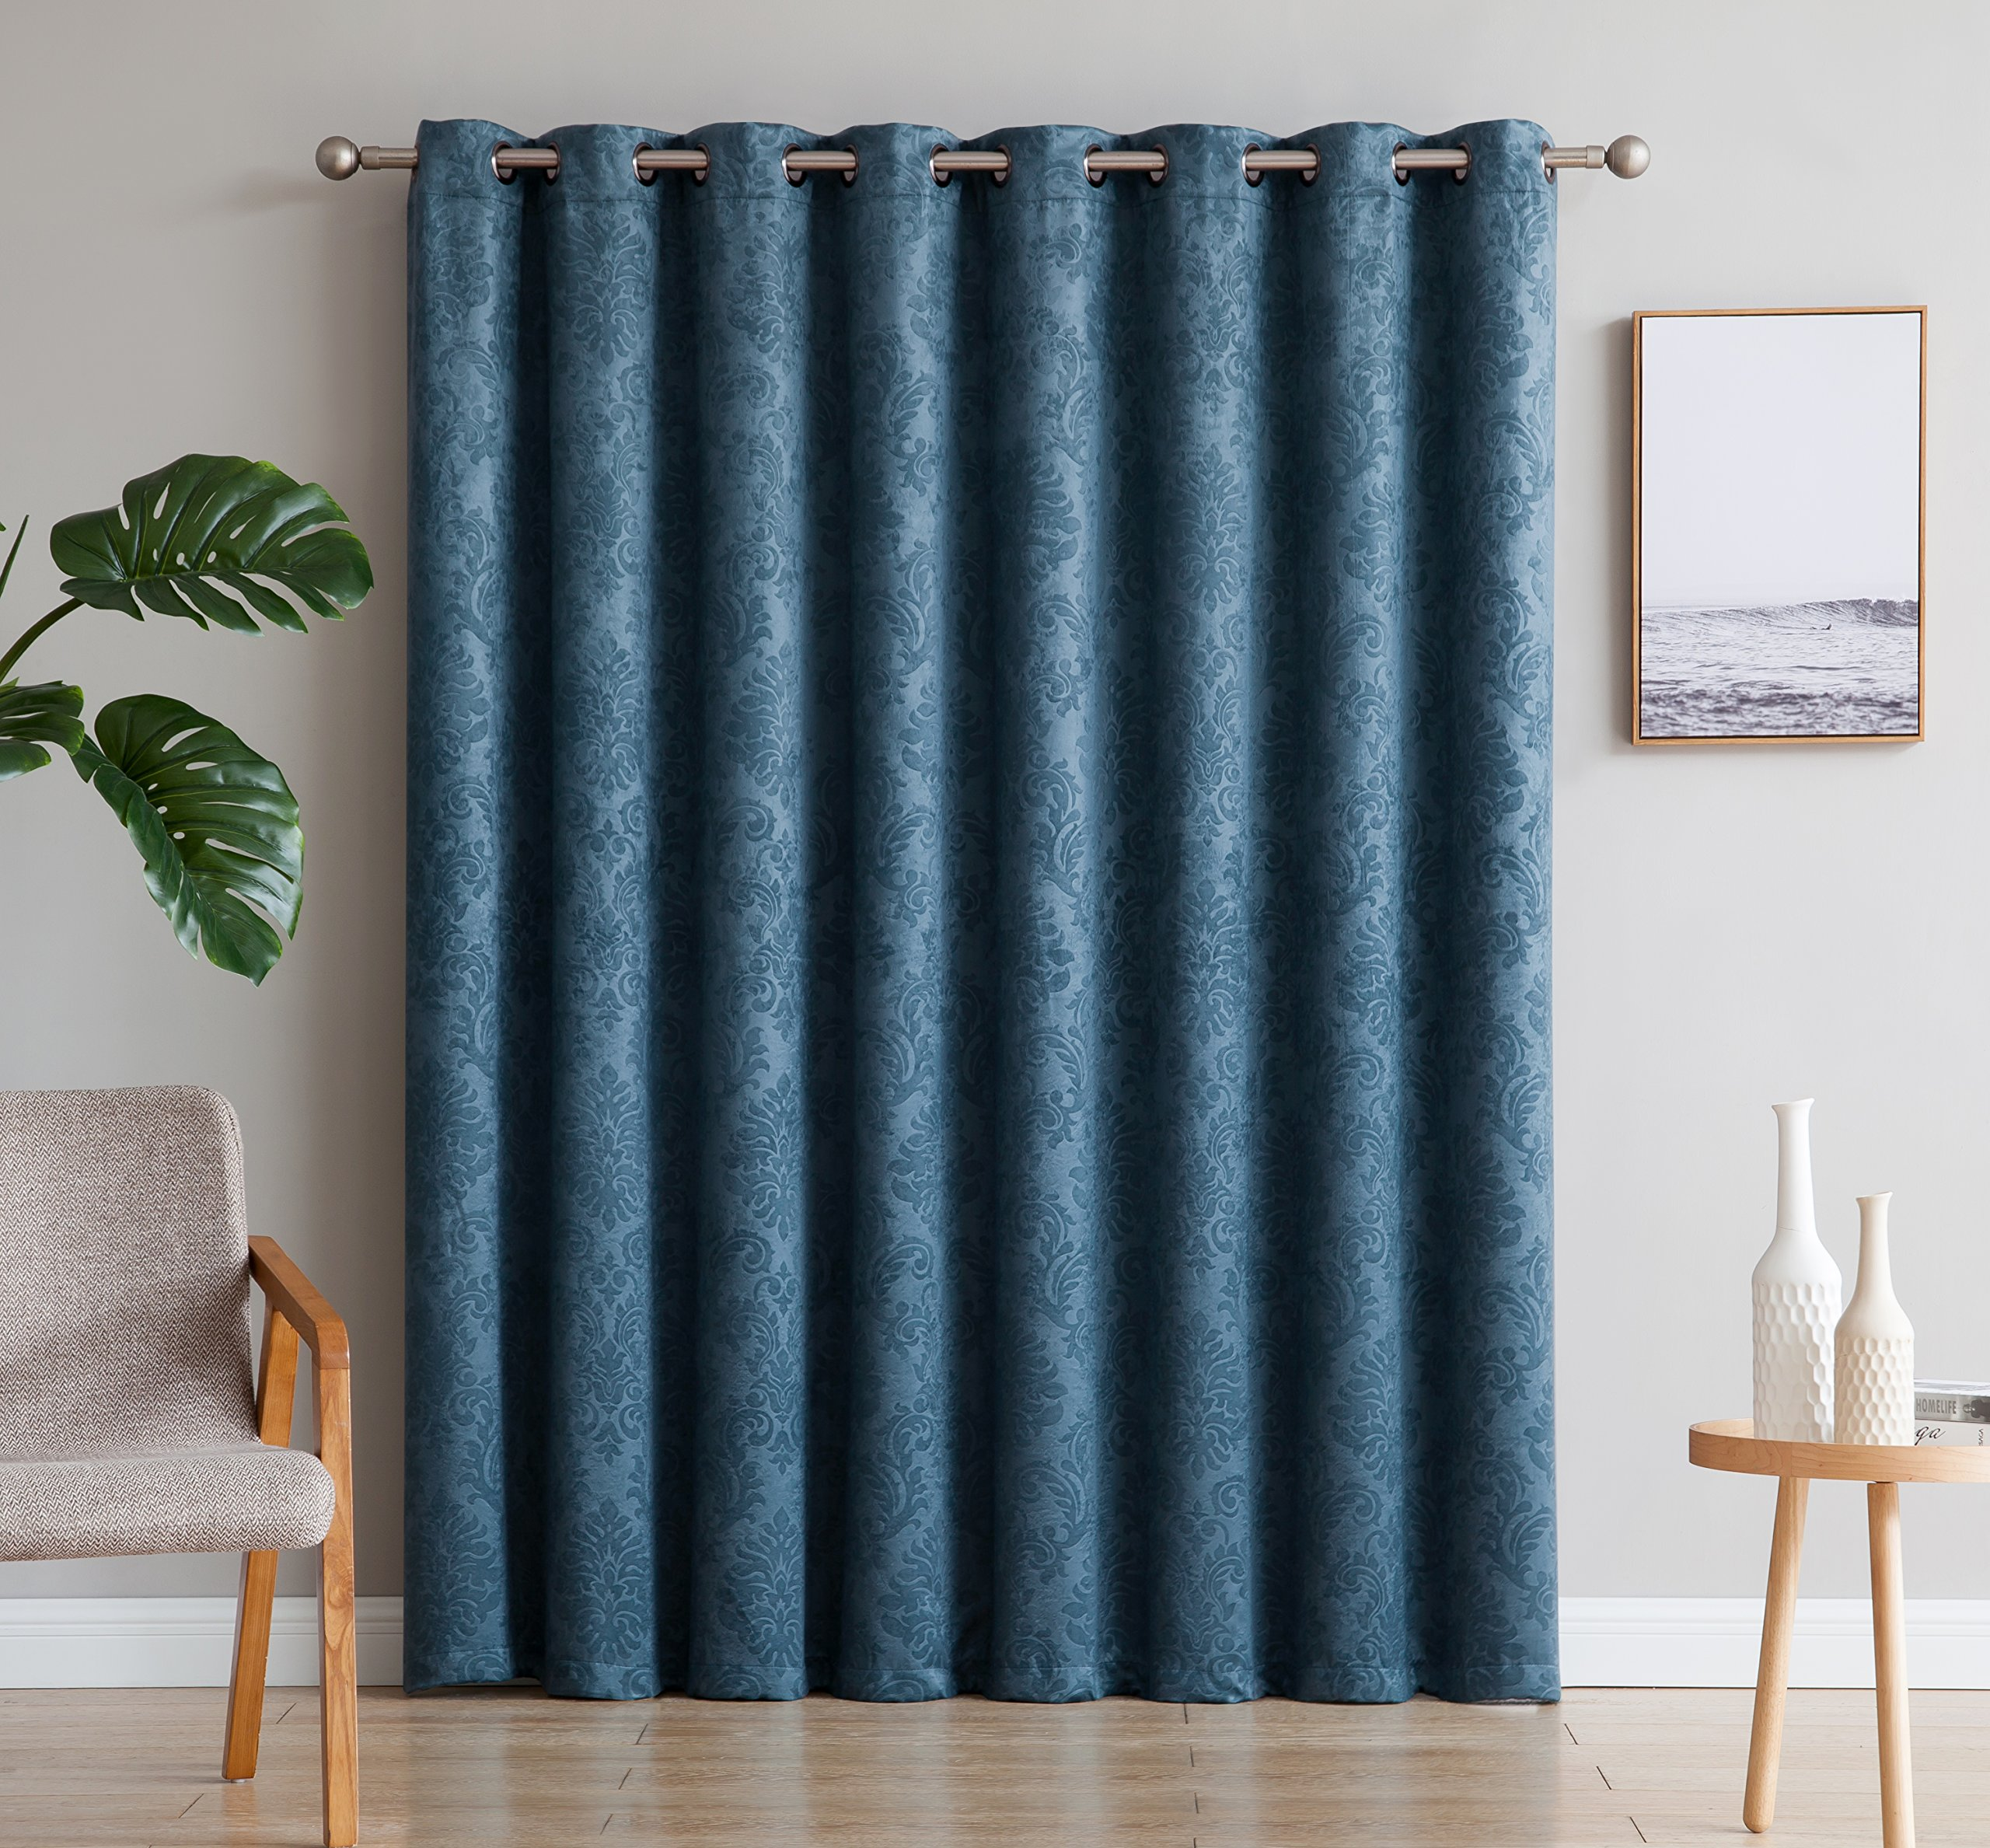 AsaTex Loretta - 1 Embossed Patio Extra Wide Curtain Panel with 16 Grommets - Thermal Weaved Blackout - Noise Reduction Fabric - Ideal for Sliding and Patio Doors (Patio 102'' W x 84'', Teal)